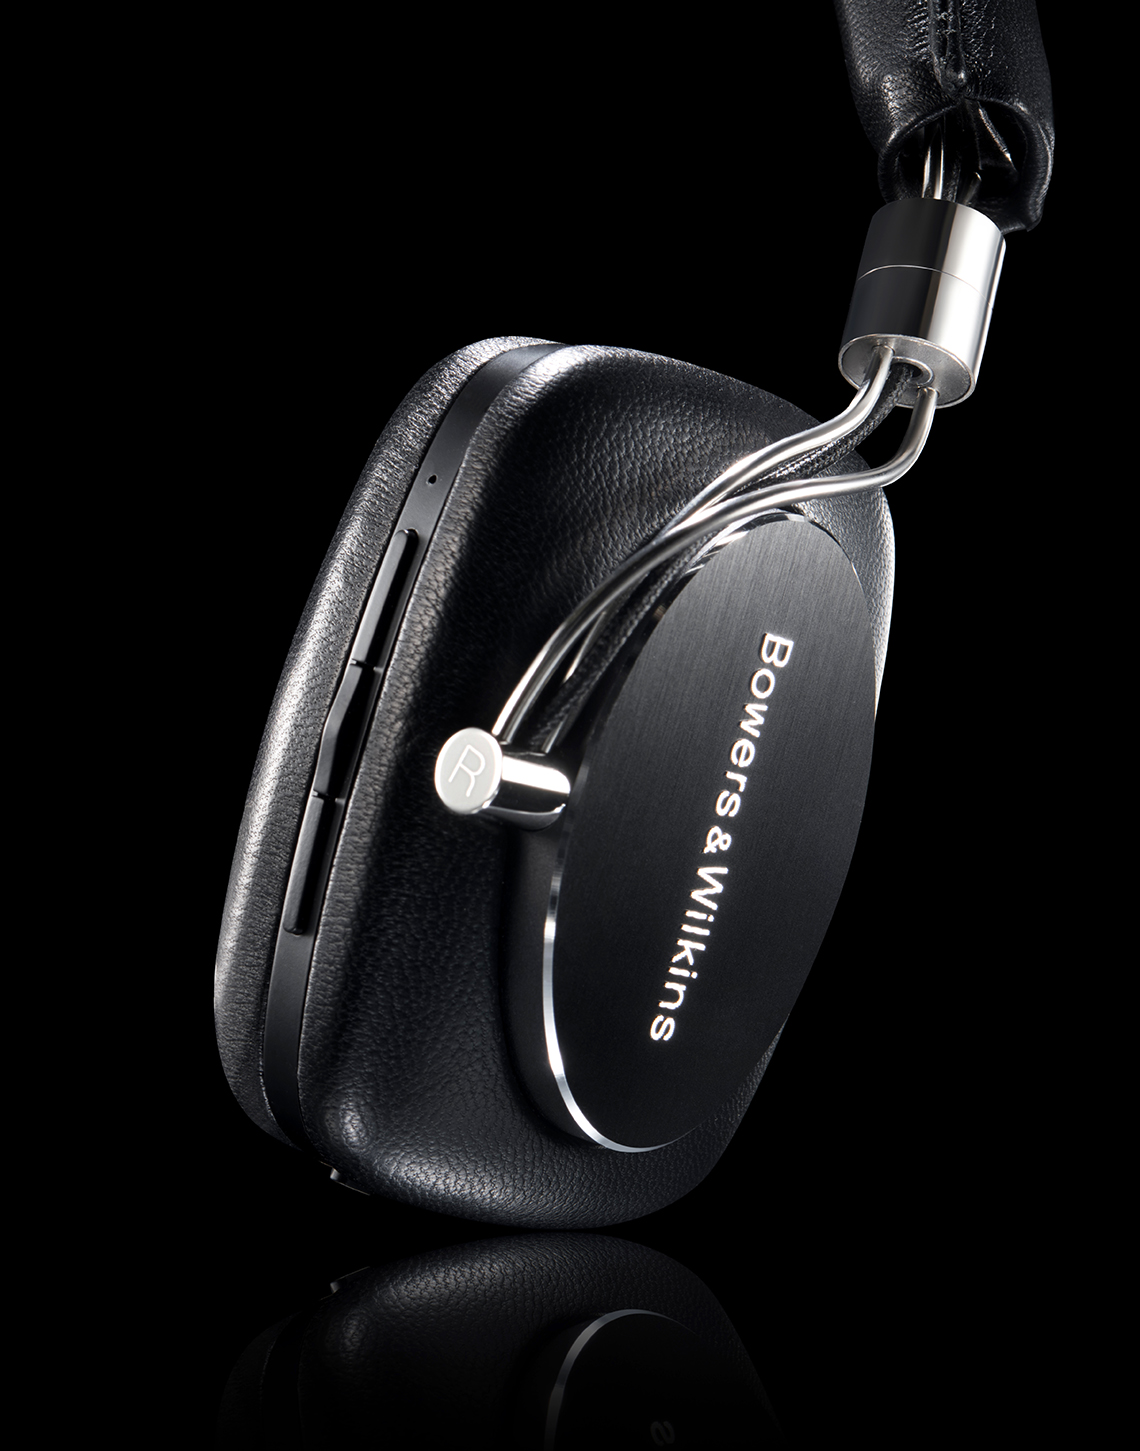 New-york-still-life-photography-studio-master-headphones